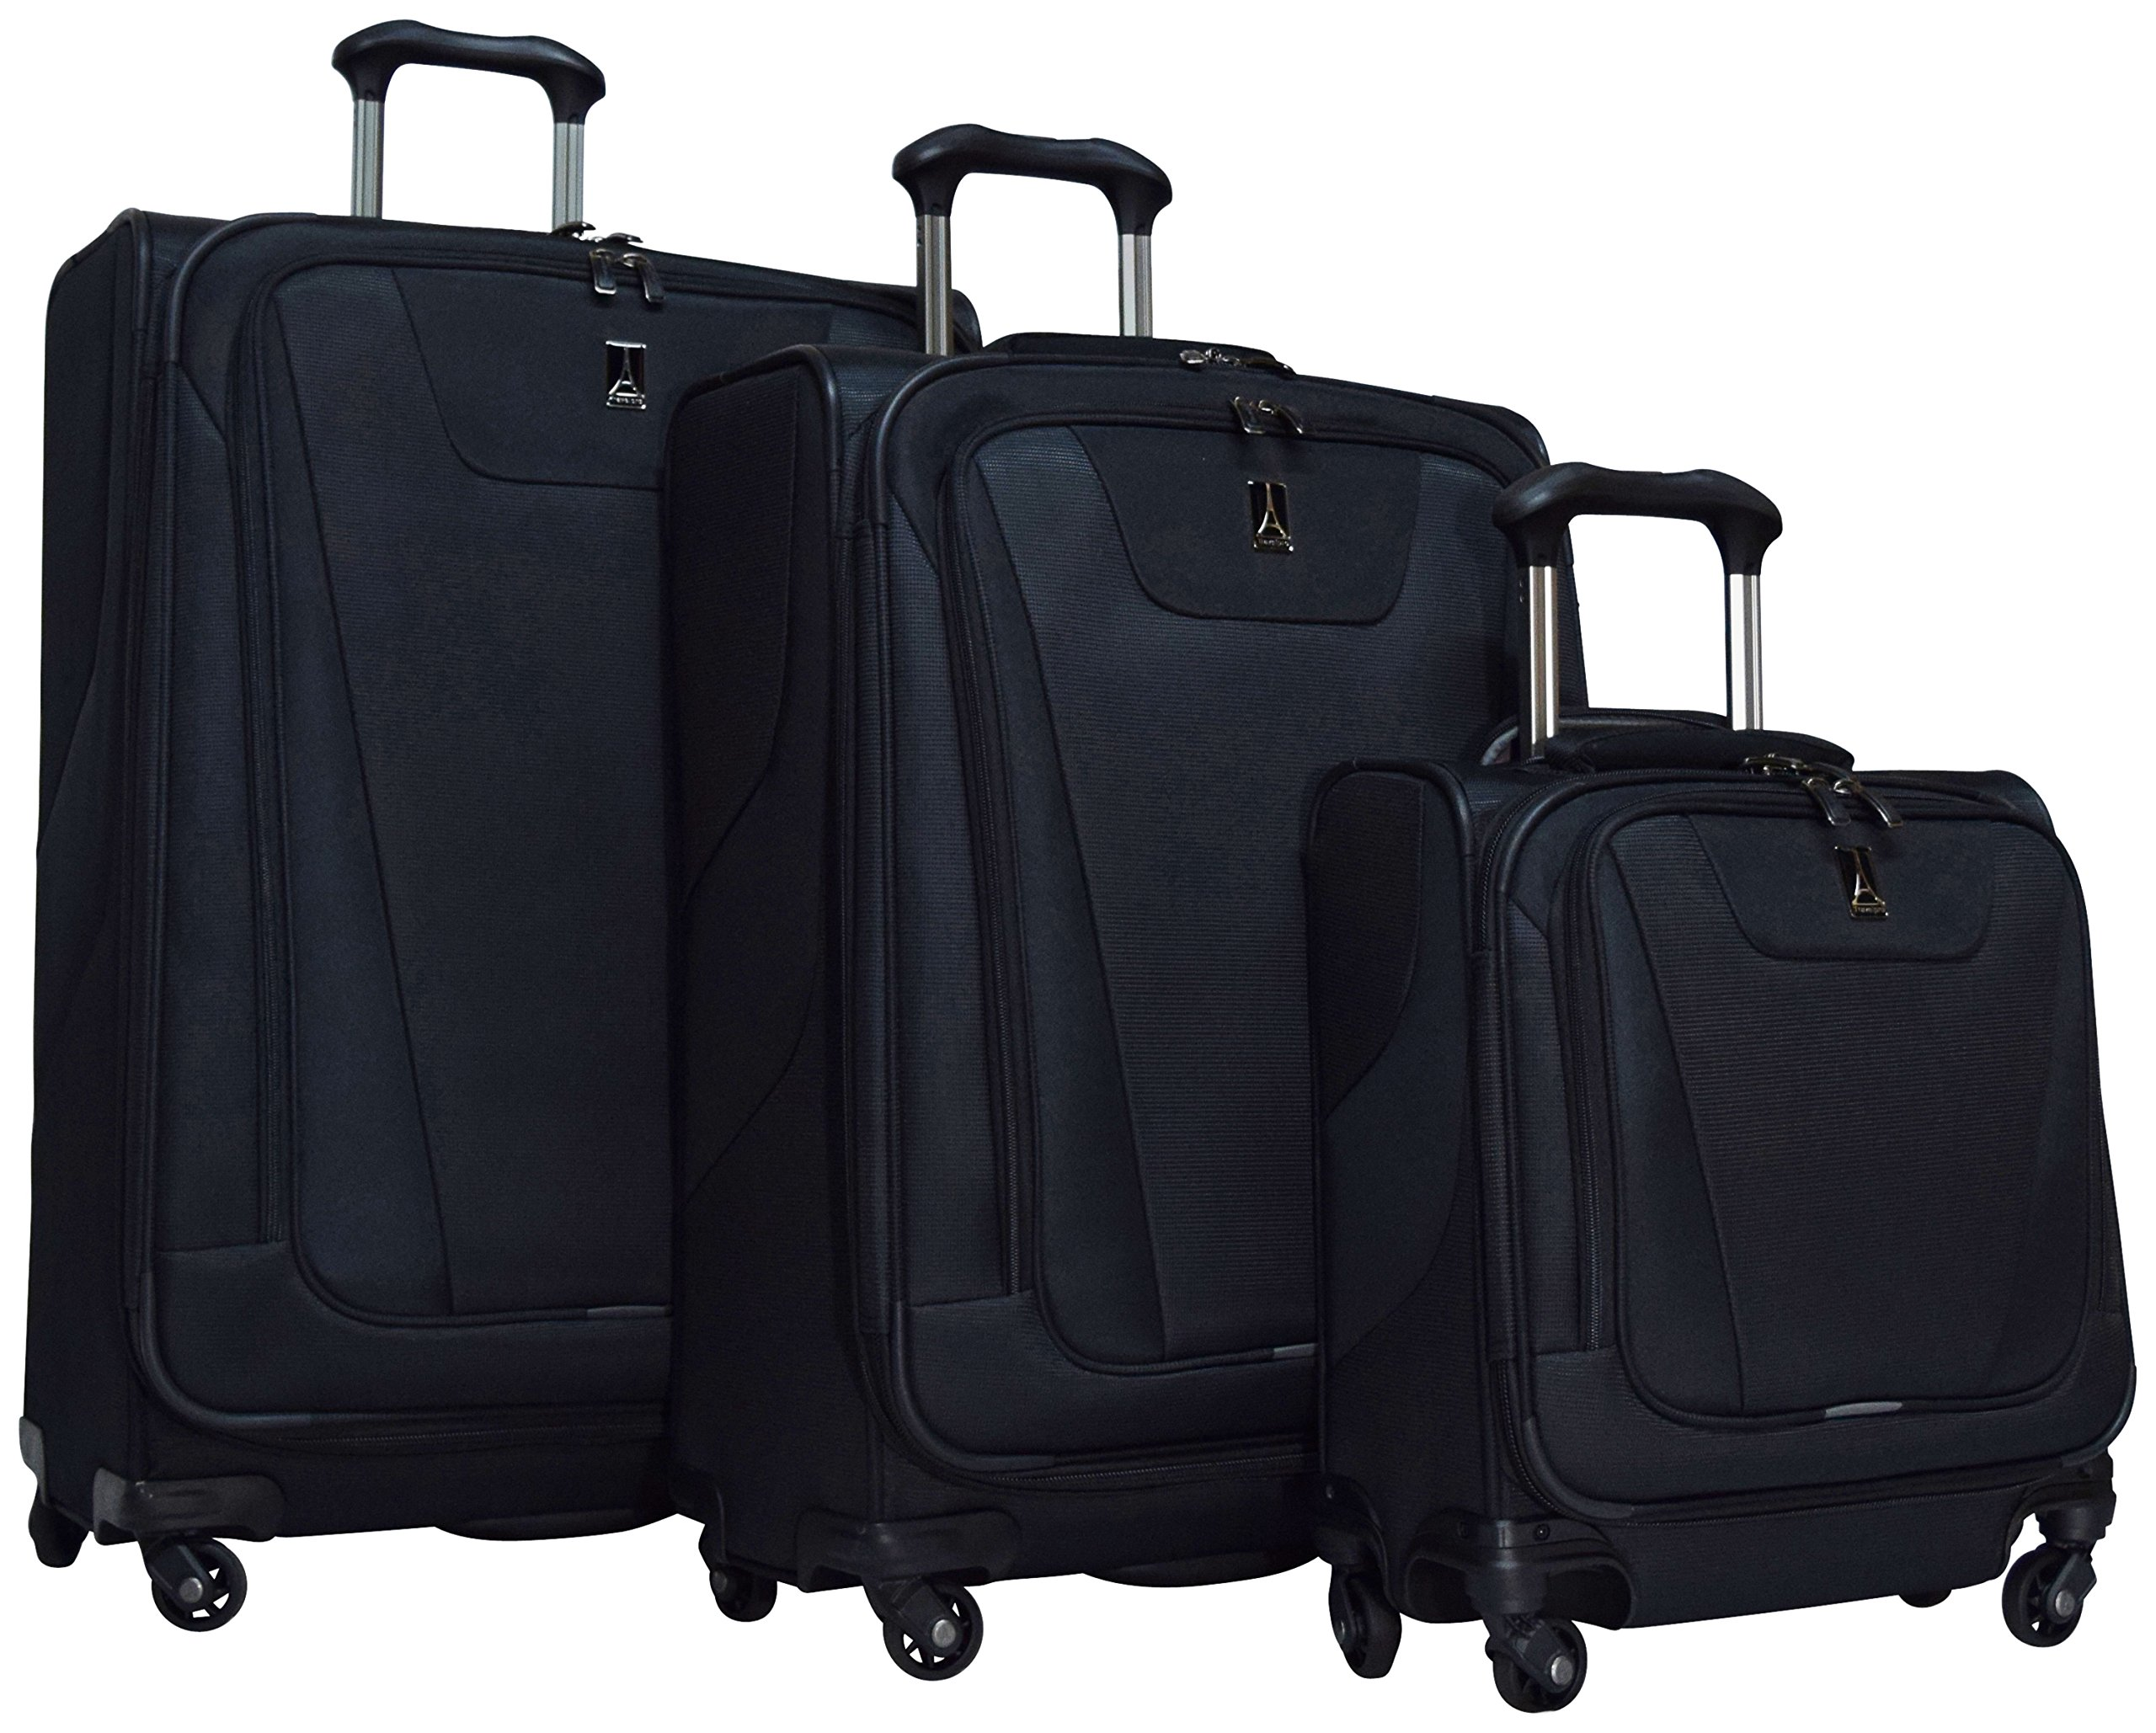 Travelpro Maxlite 4 3-Piece Luggage Set: 29'', 25'' Expandable Spinners and Under Seat Bag Carry On (Black)